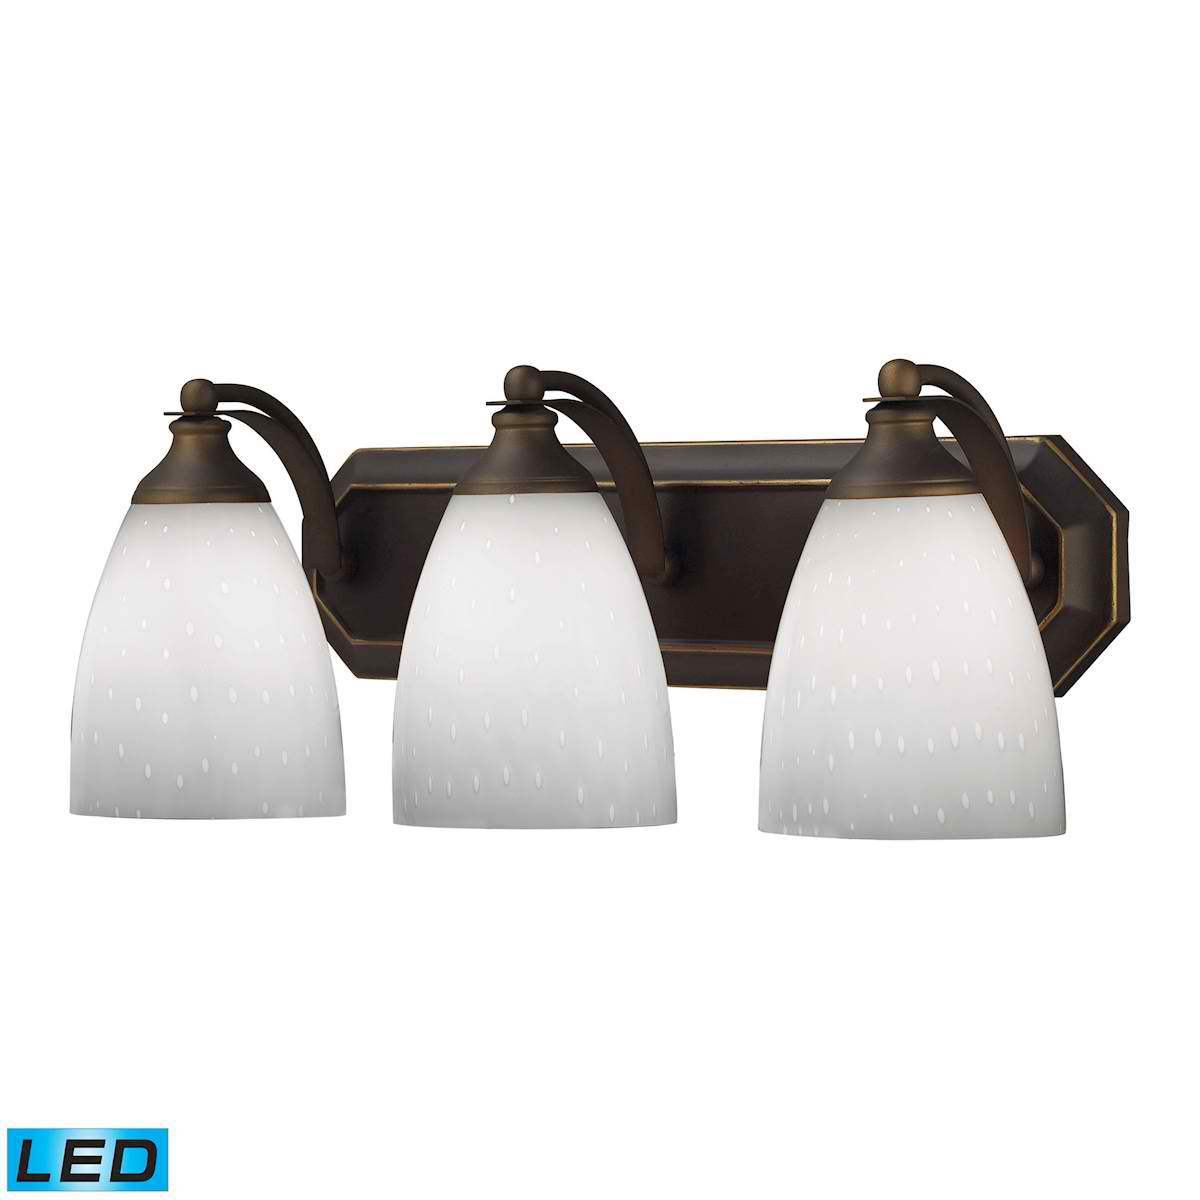 3 Light Vanity in Aged Bronze and Simply White Glass - LED, 800 Lumens (2400 Lumens Total) with Full Scale